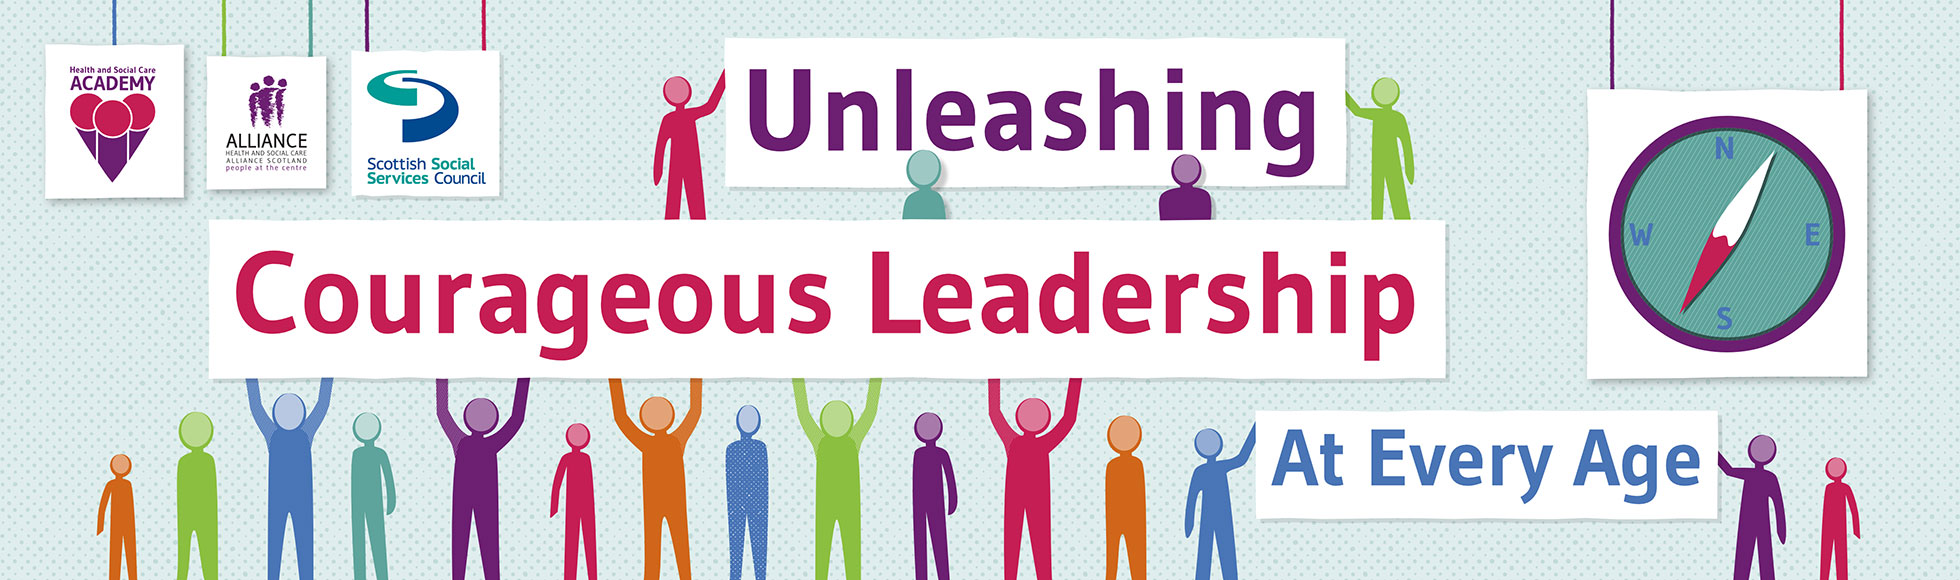 Graphic containing outlines of people in different colours, with the caption 'Unleashing courageous leadership at every age'